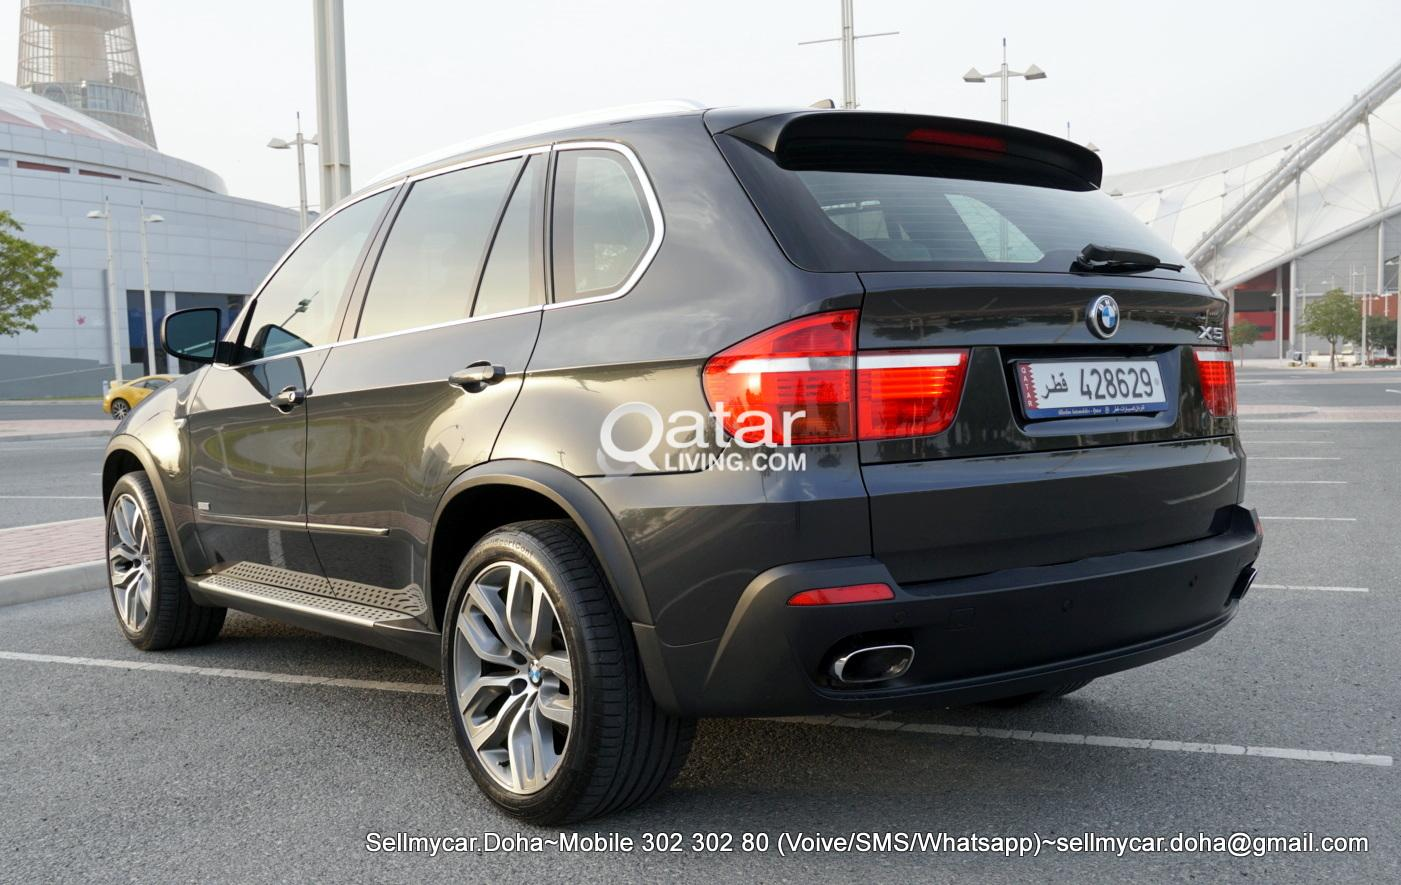 2010 BMW X5 ….(One of 2,000 Worldwide) More Photos Available Upon Request)